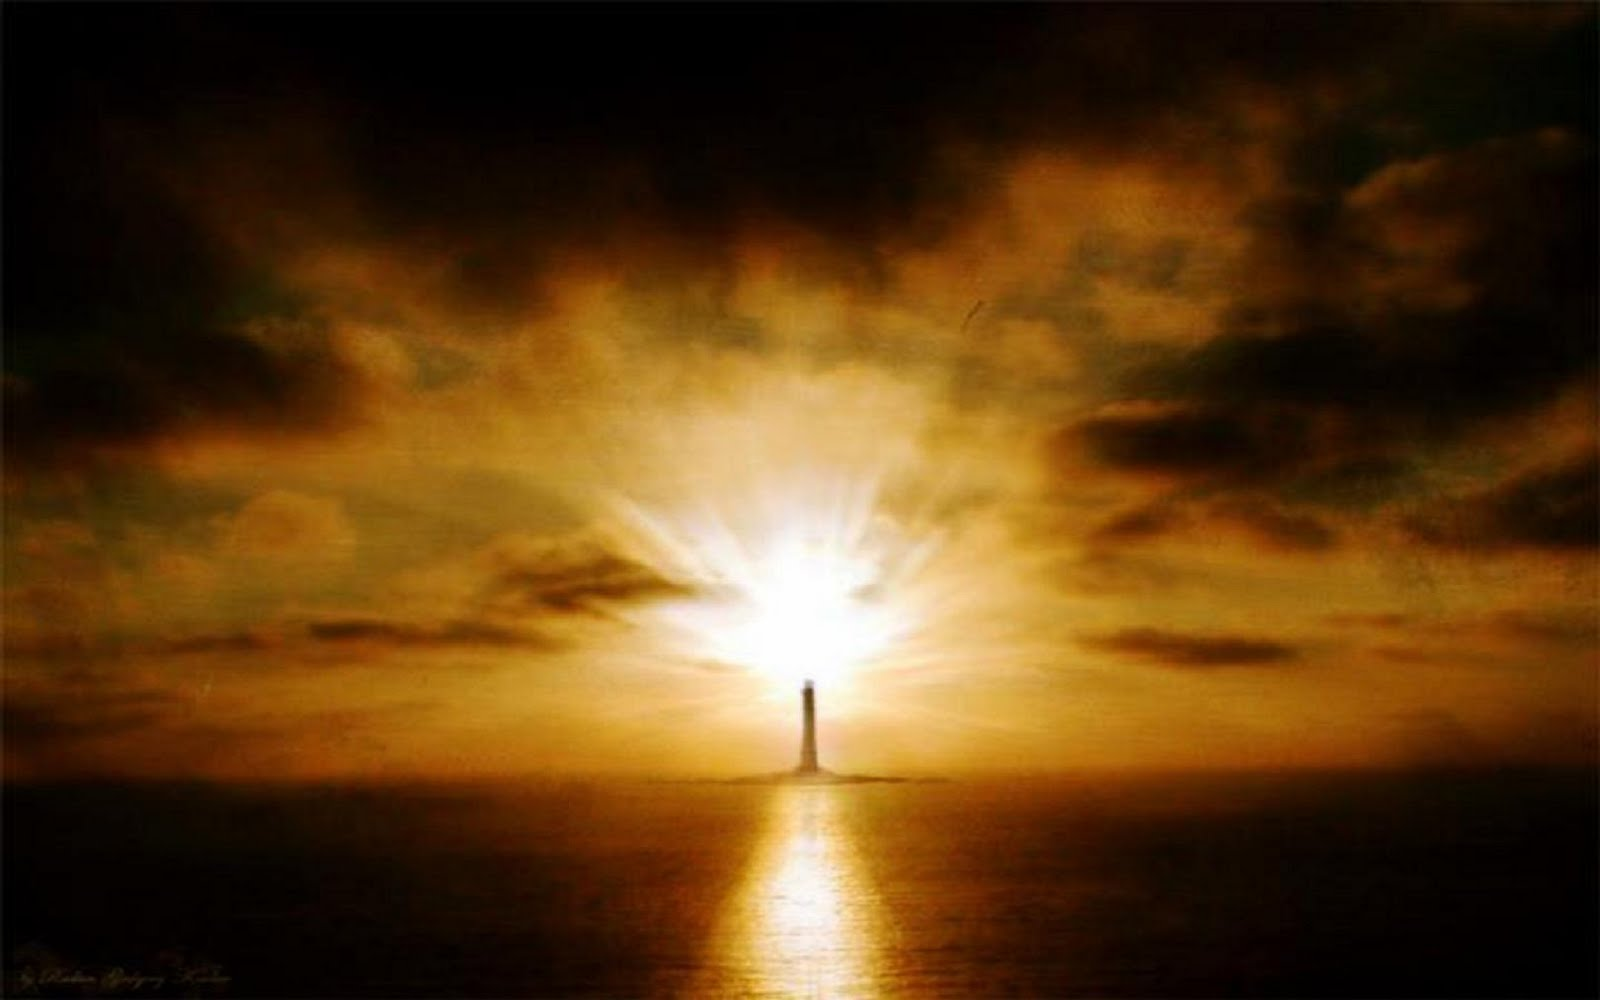 Solitude And Silence With God further Lets Go Deeper With God In The New Year moreover Thank God For Another Day Good Morning Wishes Inspirational Spiritual Quotes together with Raven additionally Let Your Light Shine. on let gods light shine in you